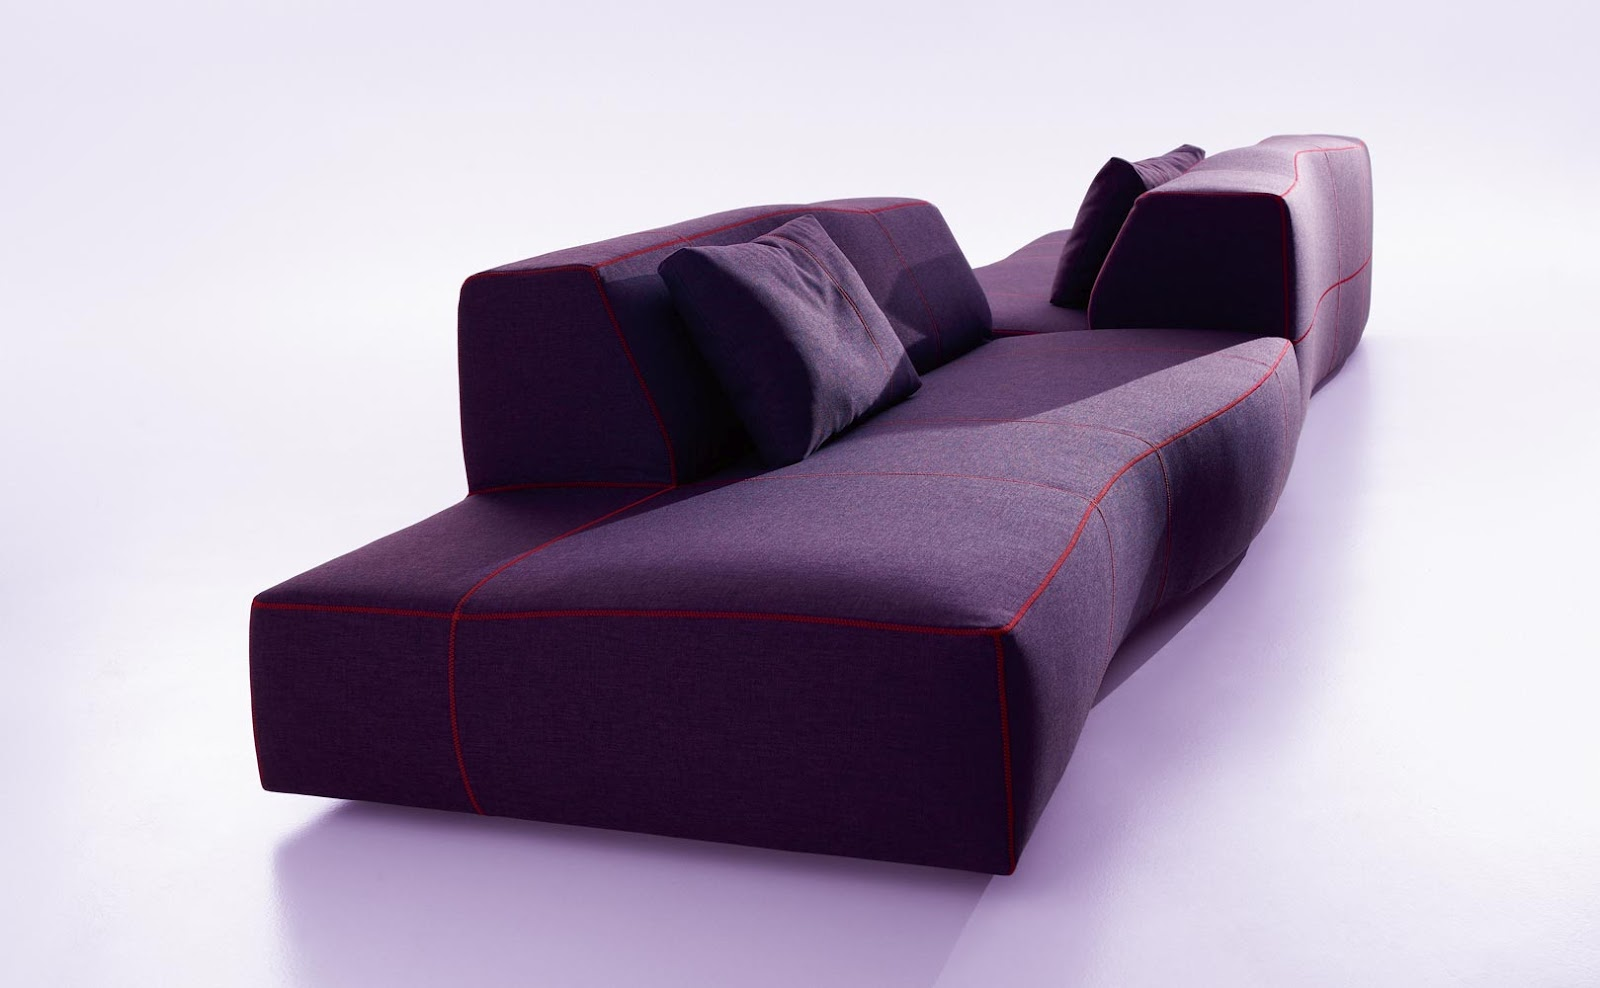 Bend Sofa By B B Italia Designer Furniture Fitted